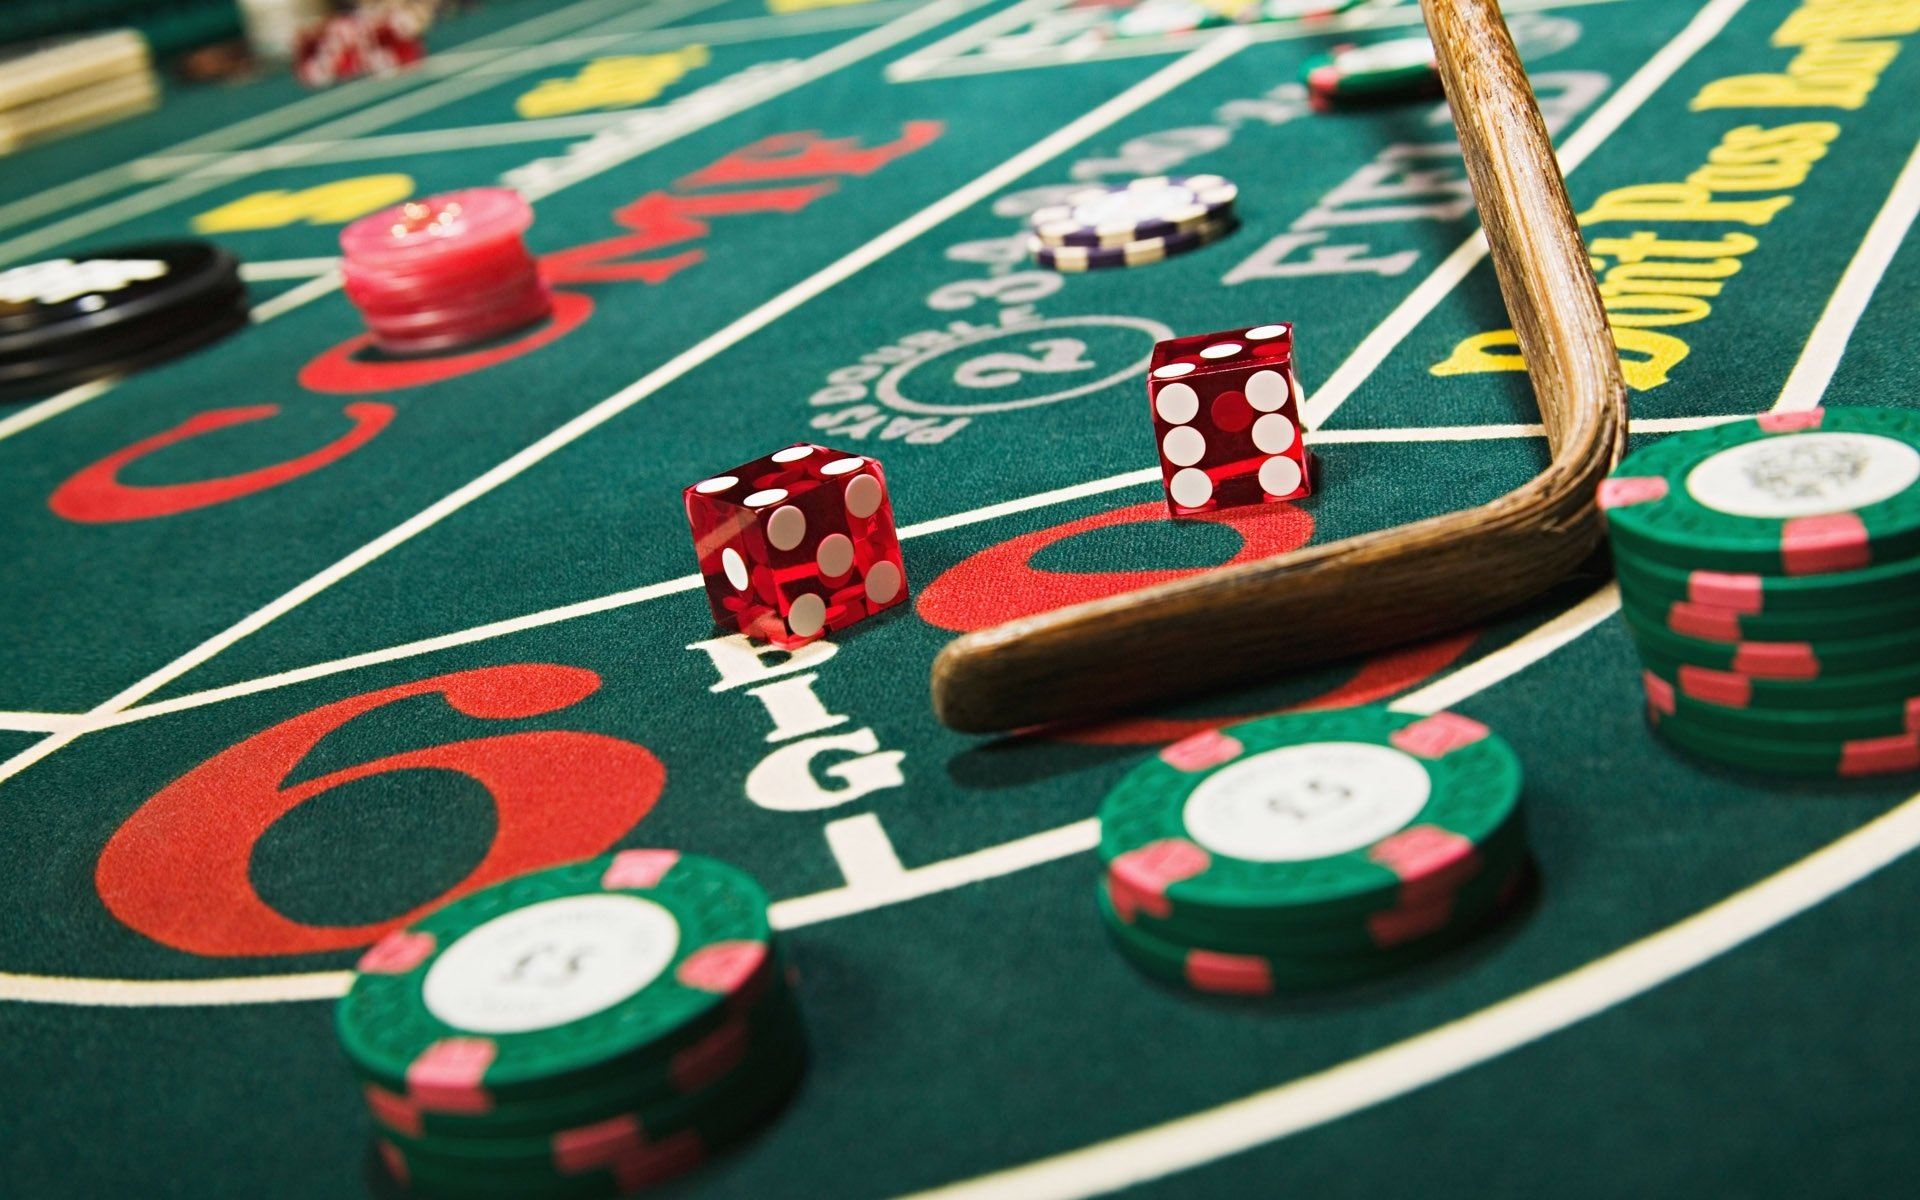 Fair Poker Sites - Is Online Poker Rigged?